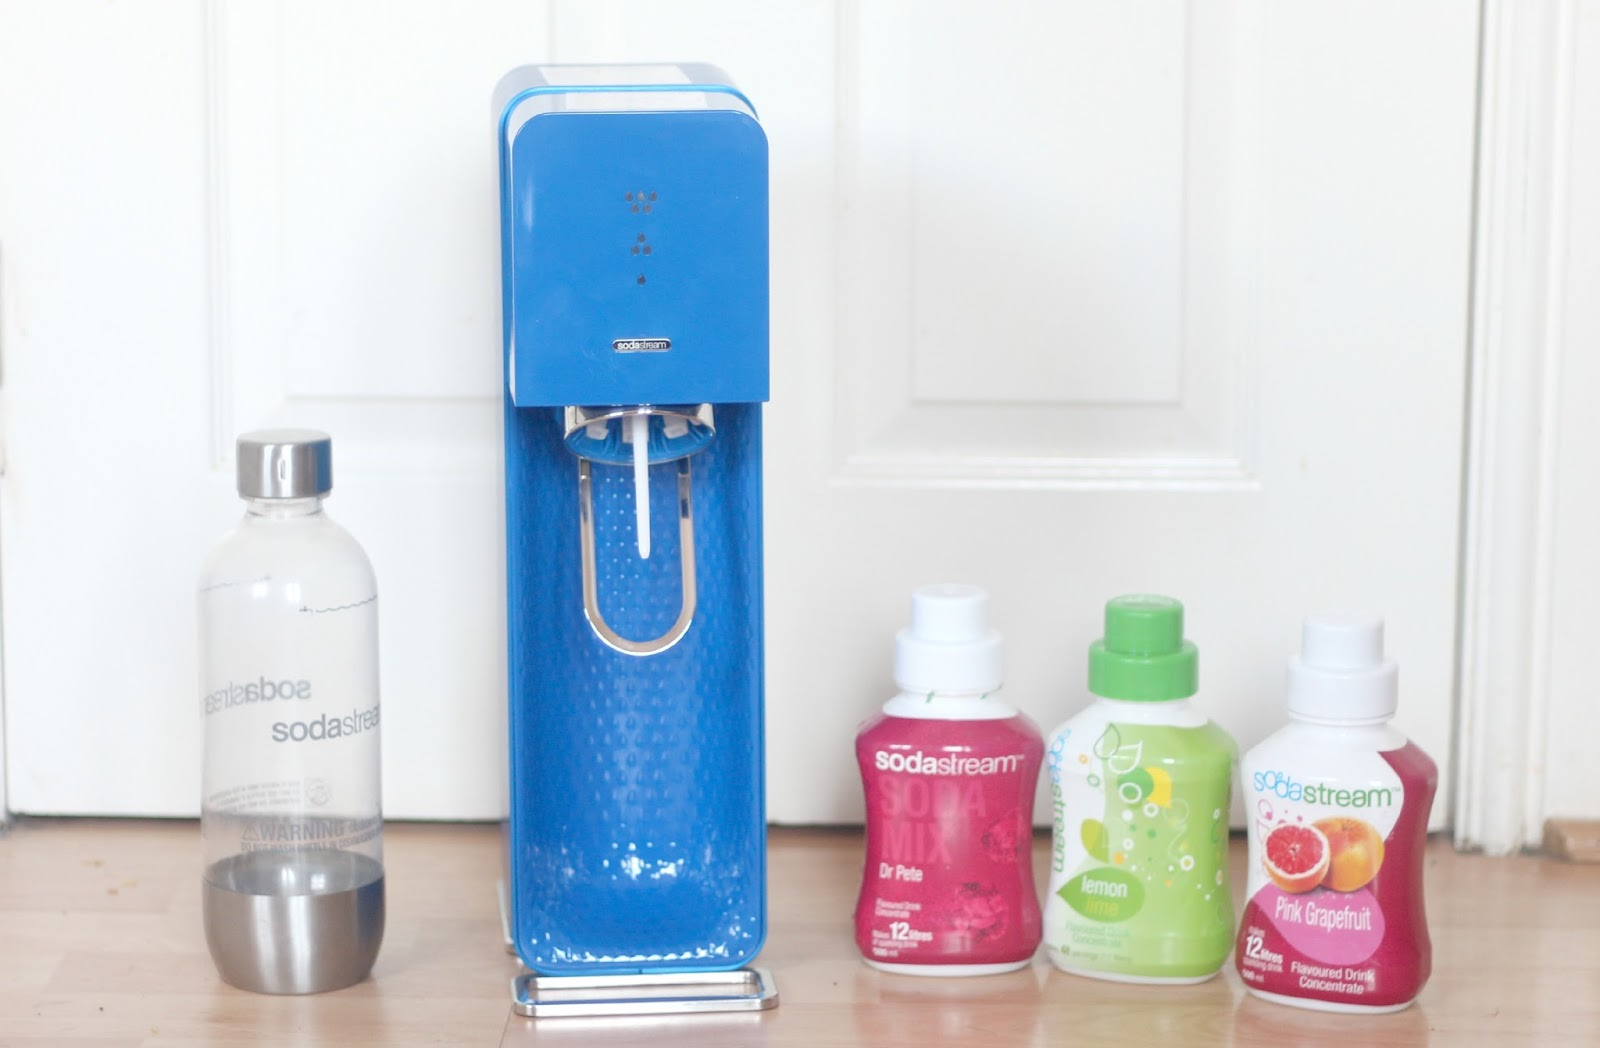 soda stream save 25 off any sodastream home soda maker. Black Bedroom Furniture Sets. Home Design Ideas